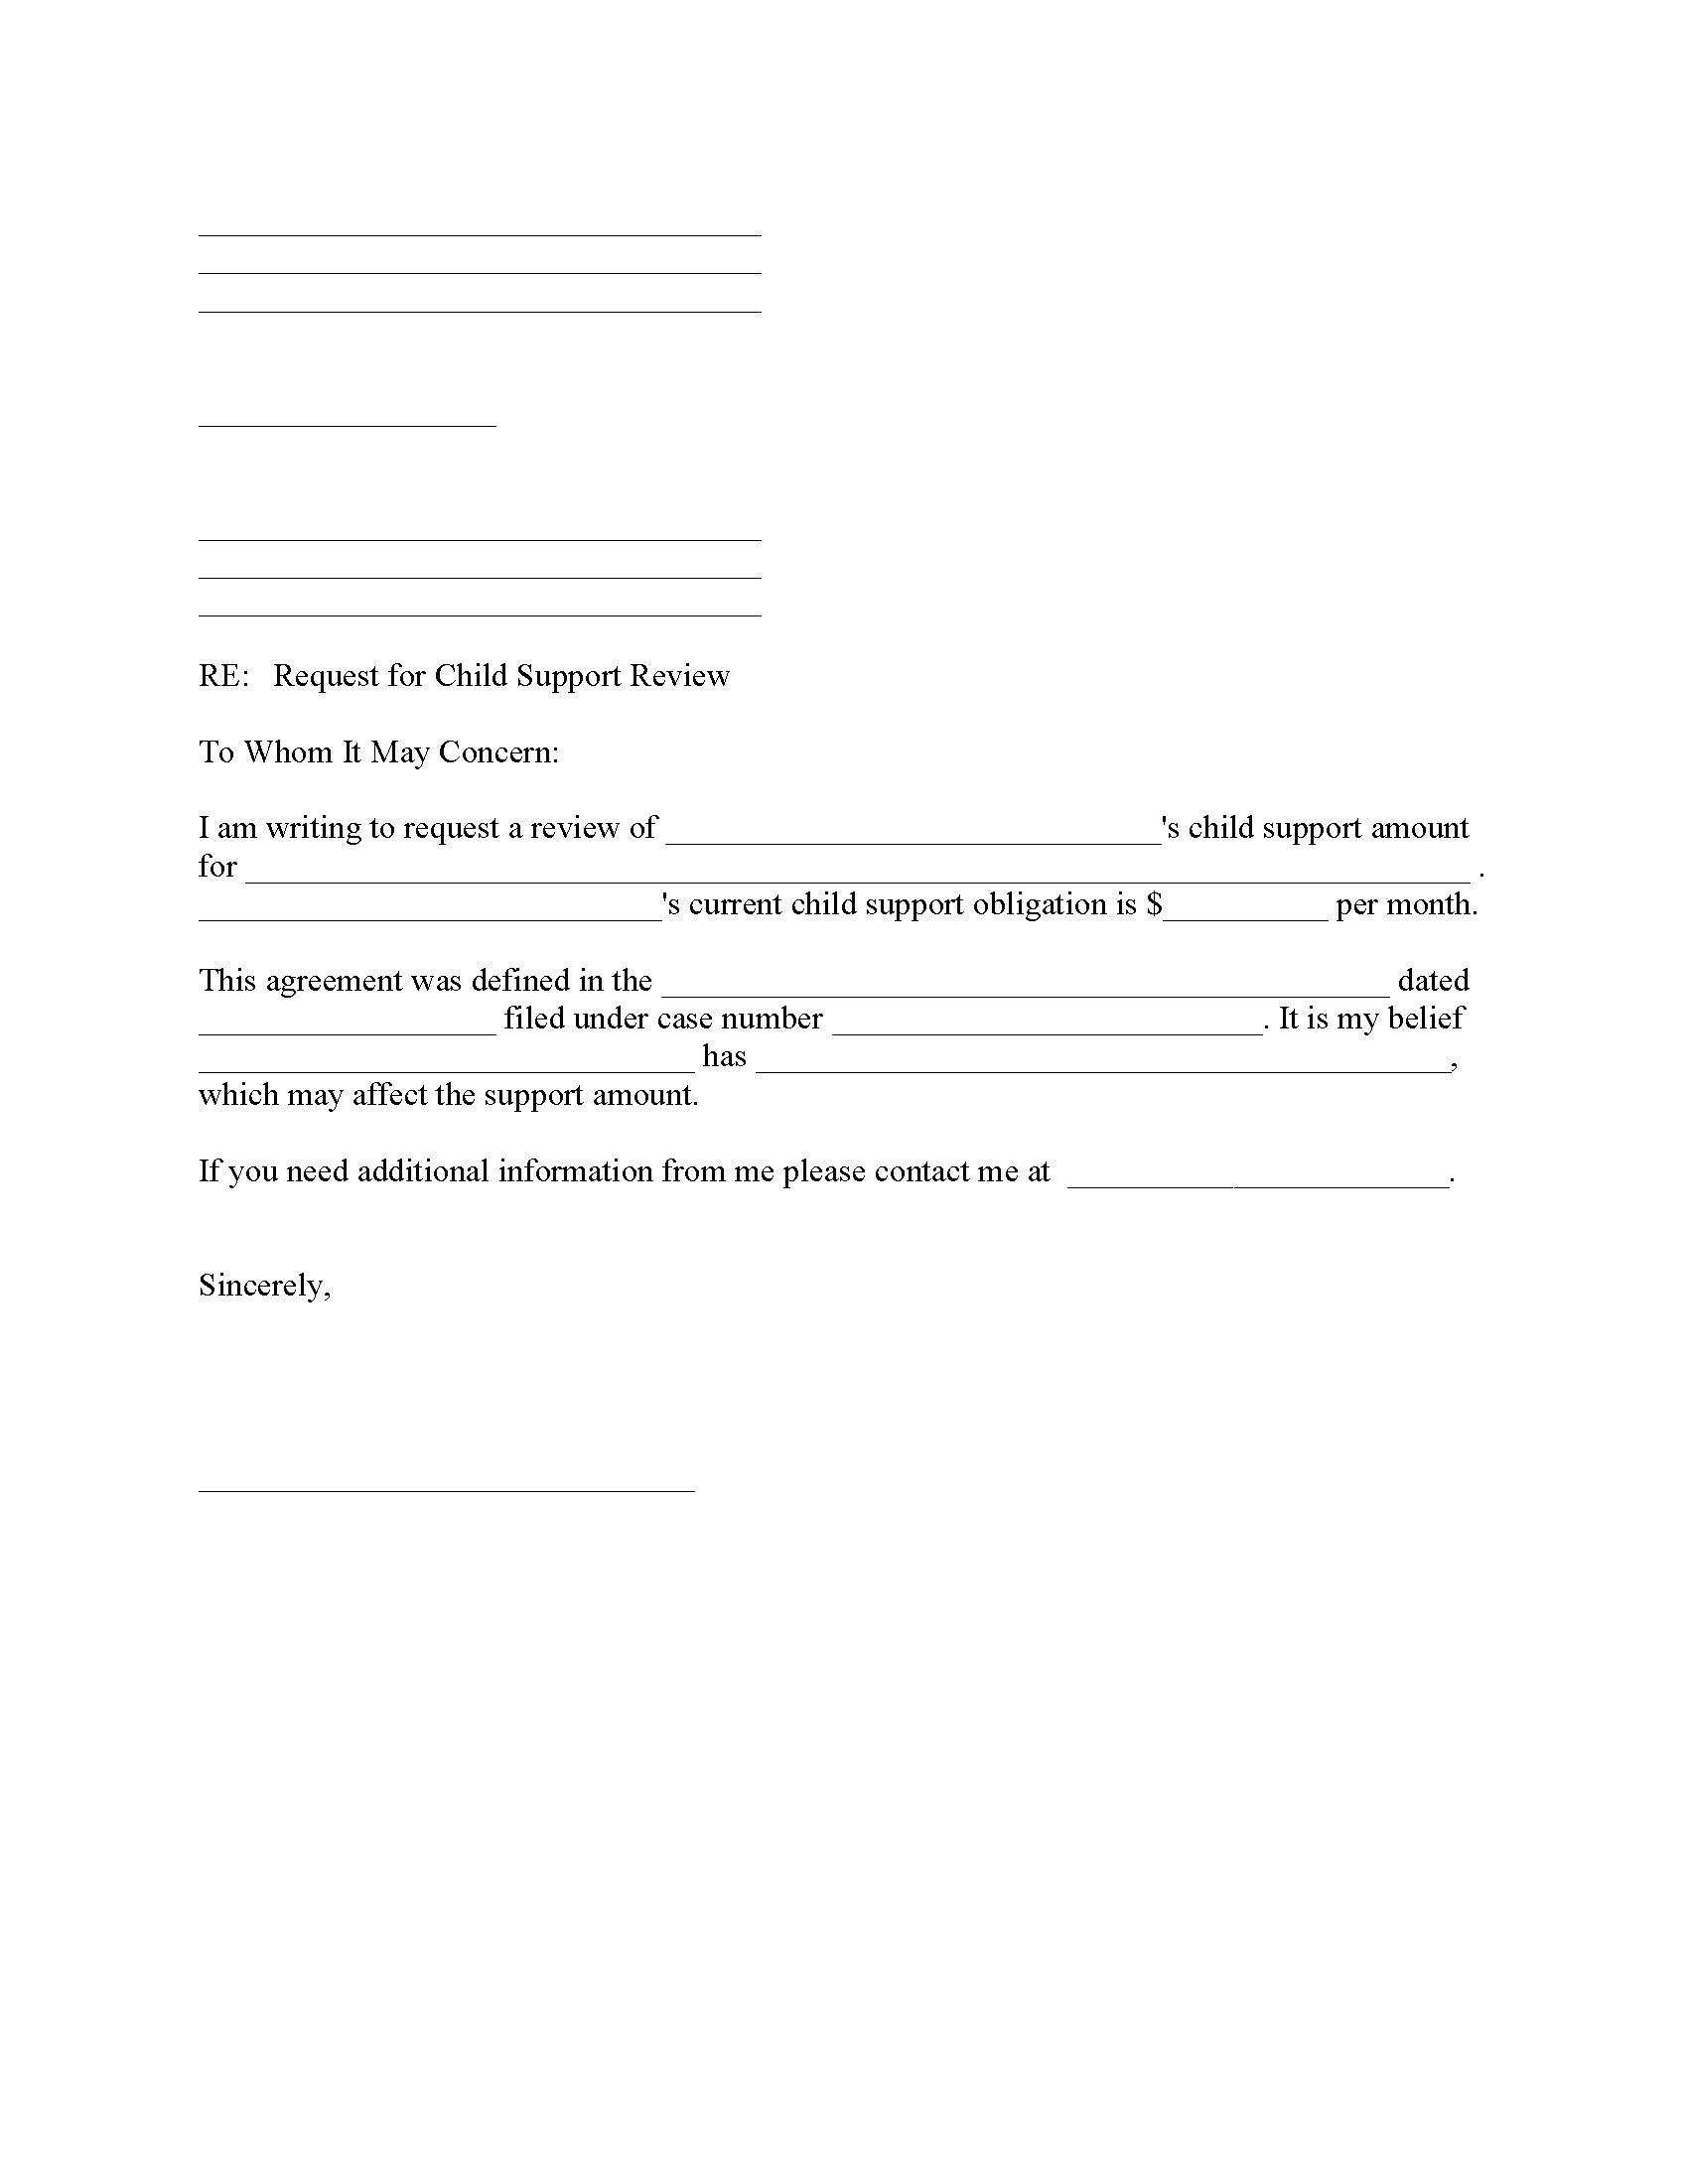 Child Support Review Request